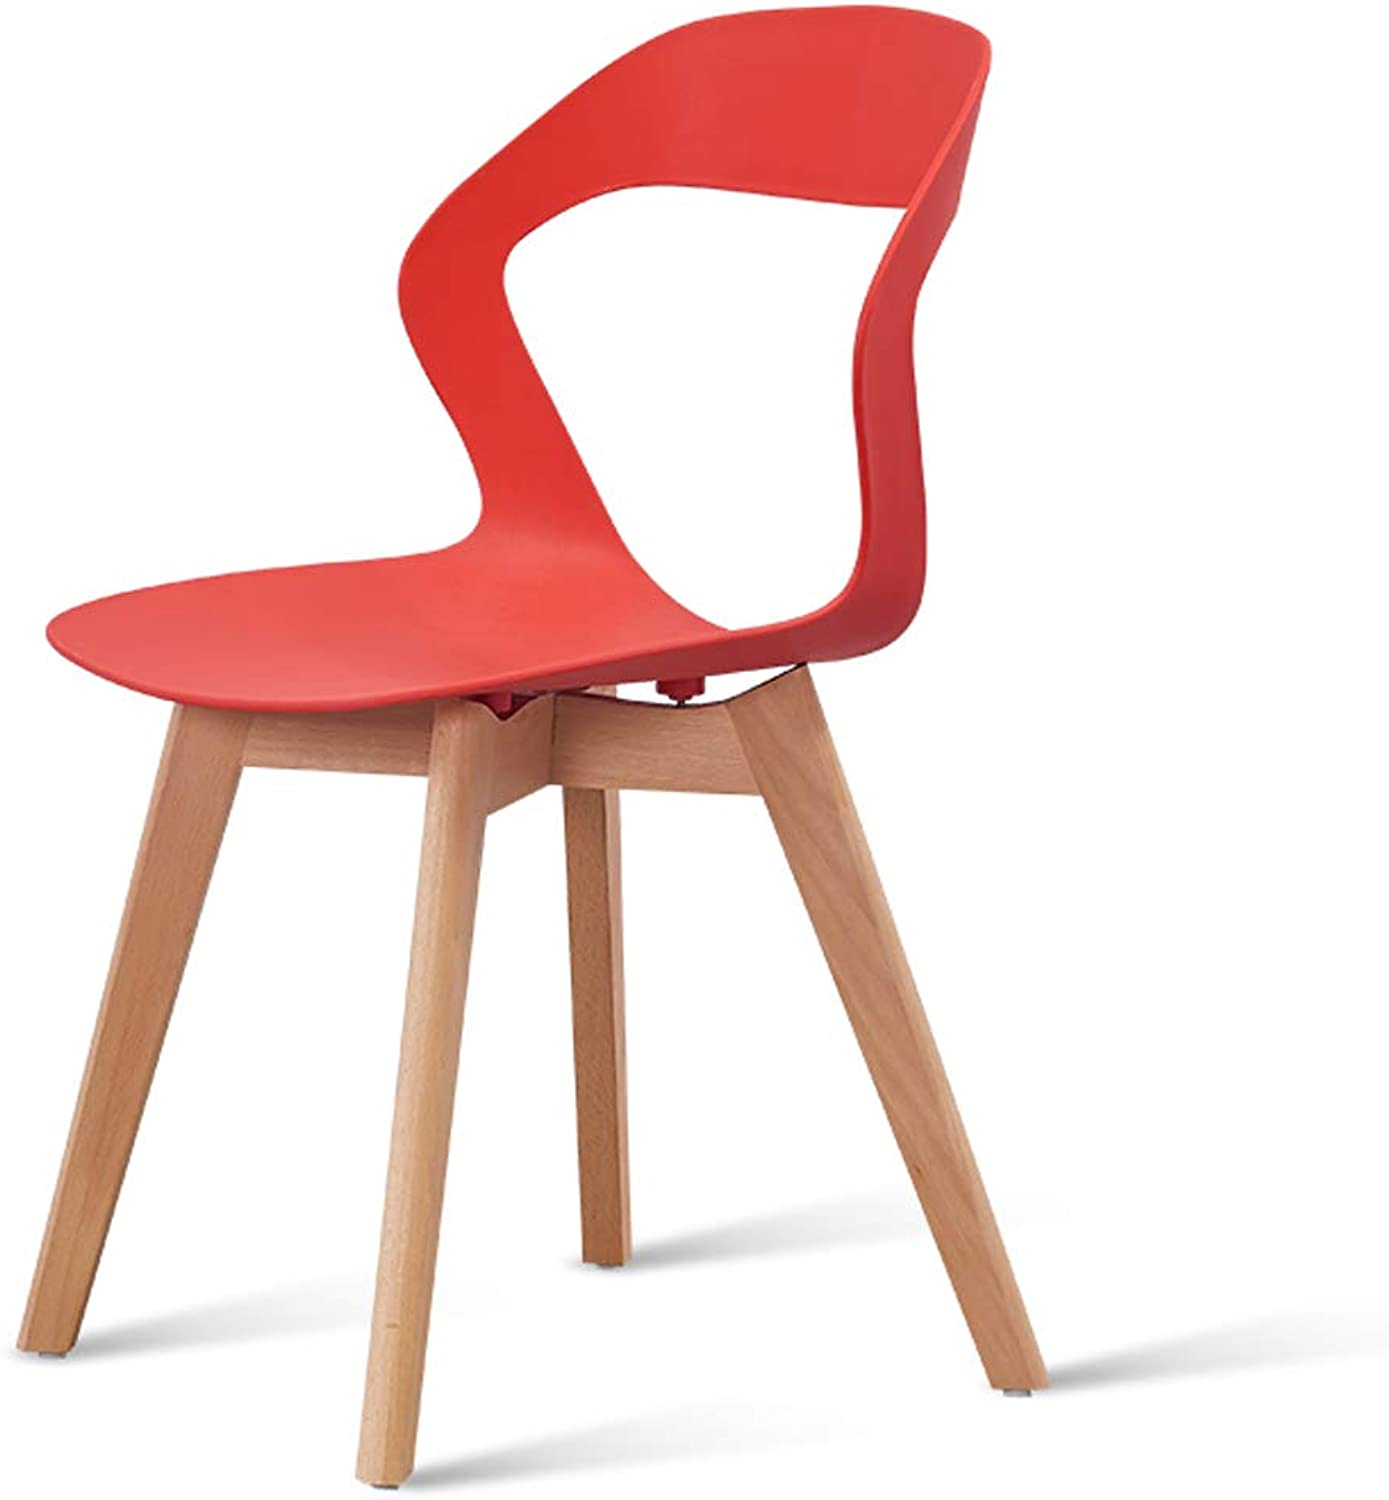 LRW Nordic Dining Chair, Home Computer Chair, Modern Backrest Chair, Bedroom Chair, Red